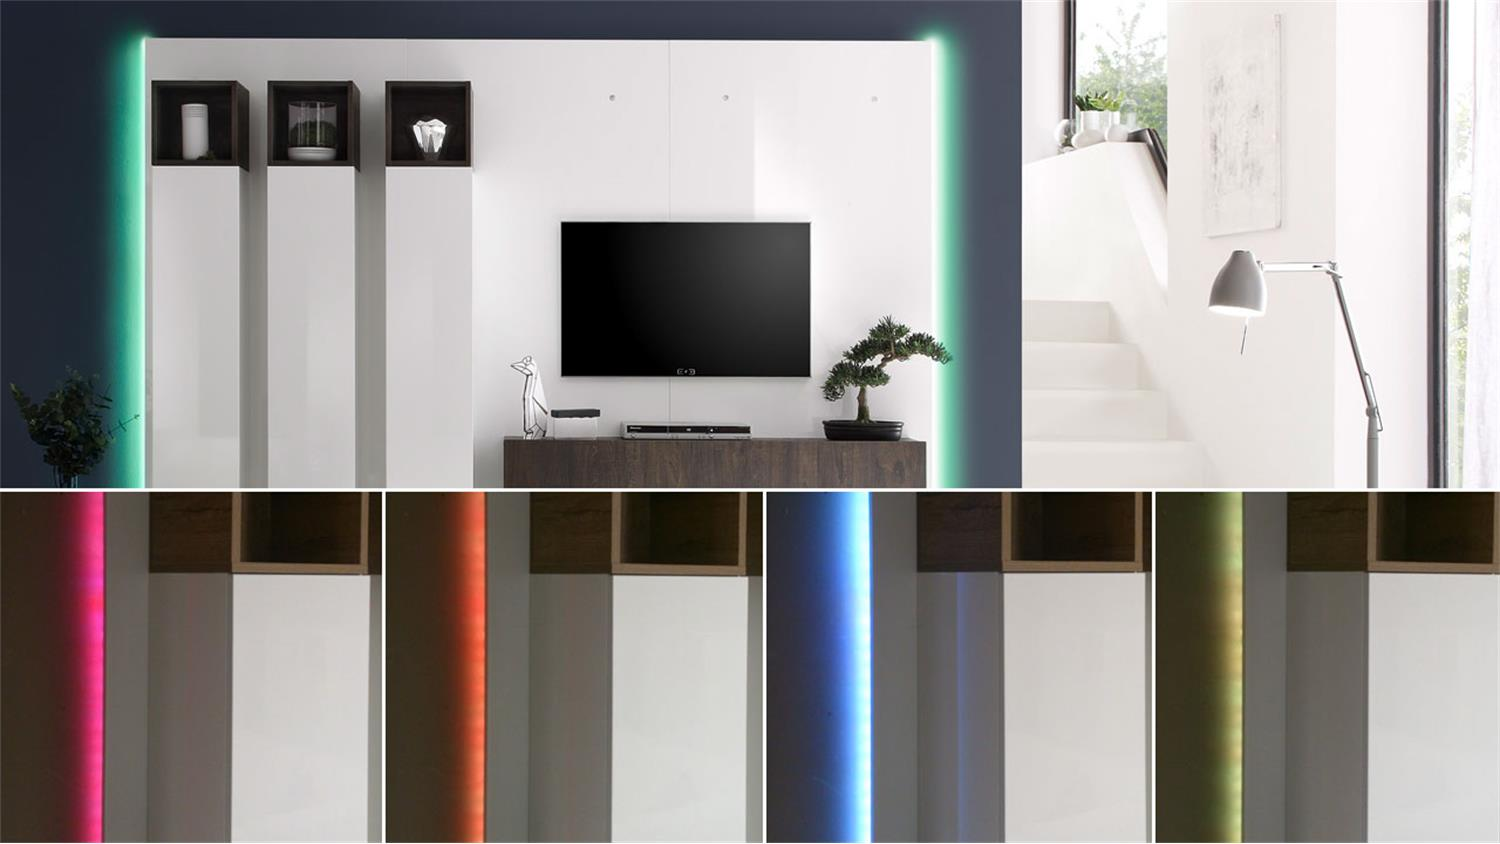 Beleuchtung F?r Wohnw?nde : Paneel Beleuchtung Wohnwand CUBE RGB LED 16 Farben